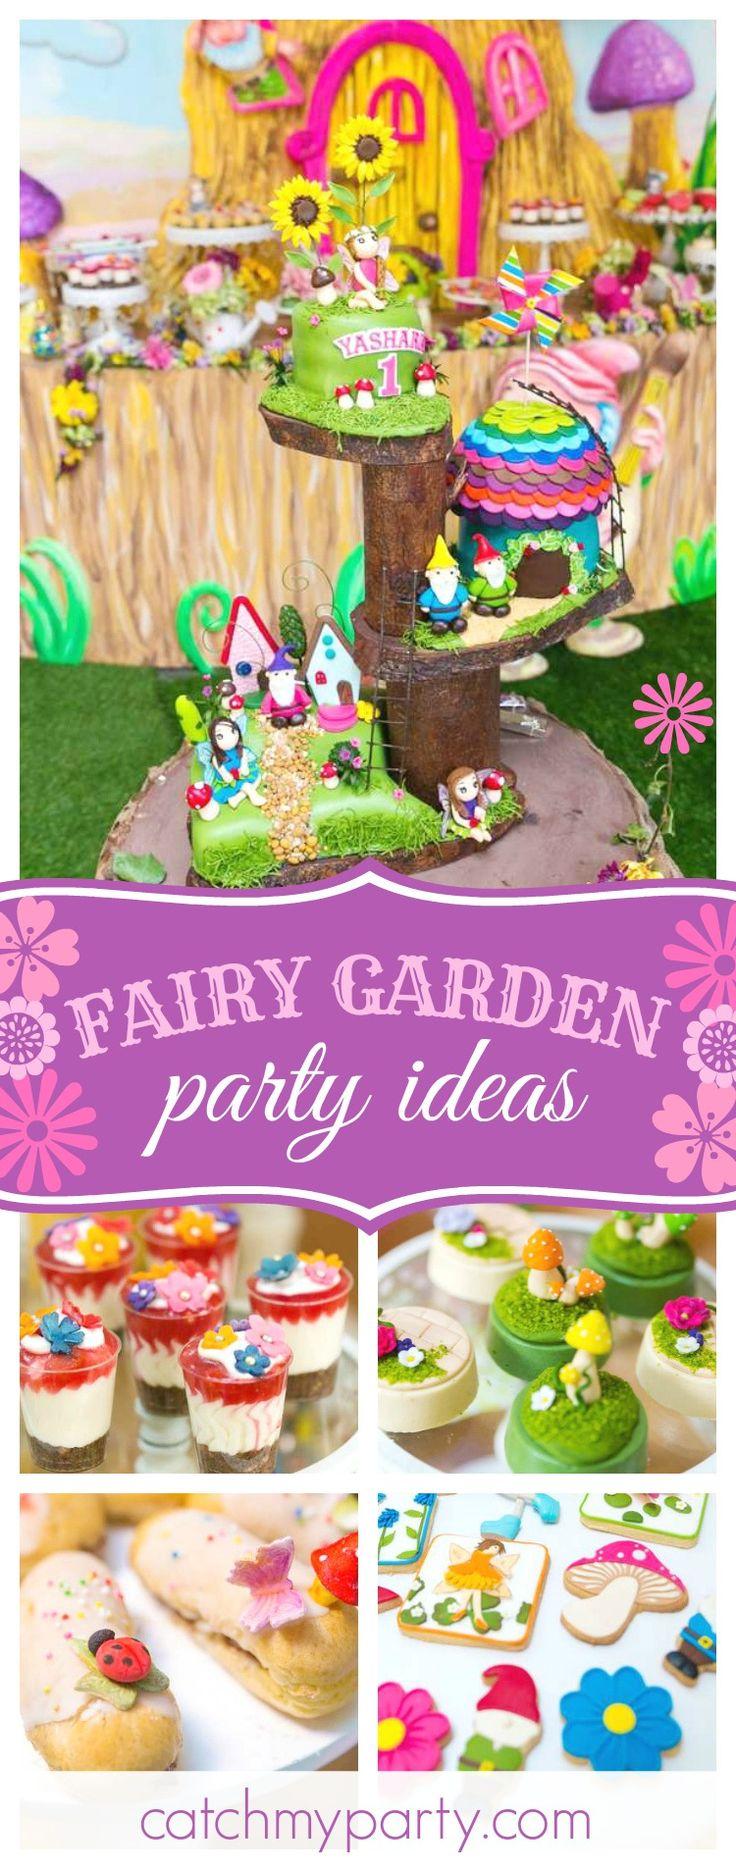 430 best Fairy Party Ideas images on Pinterest | Birthday party ...